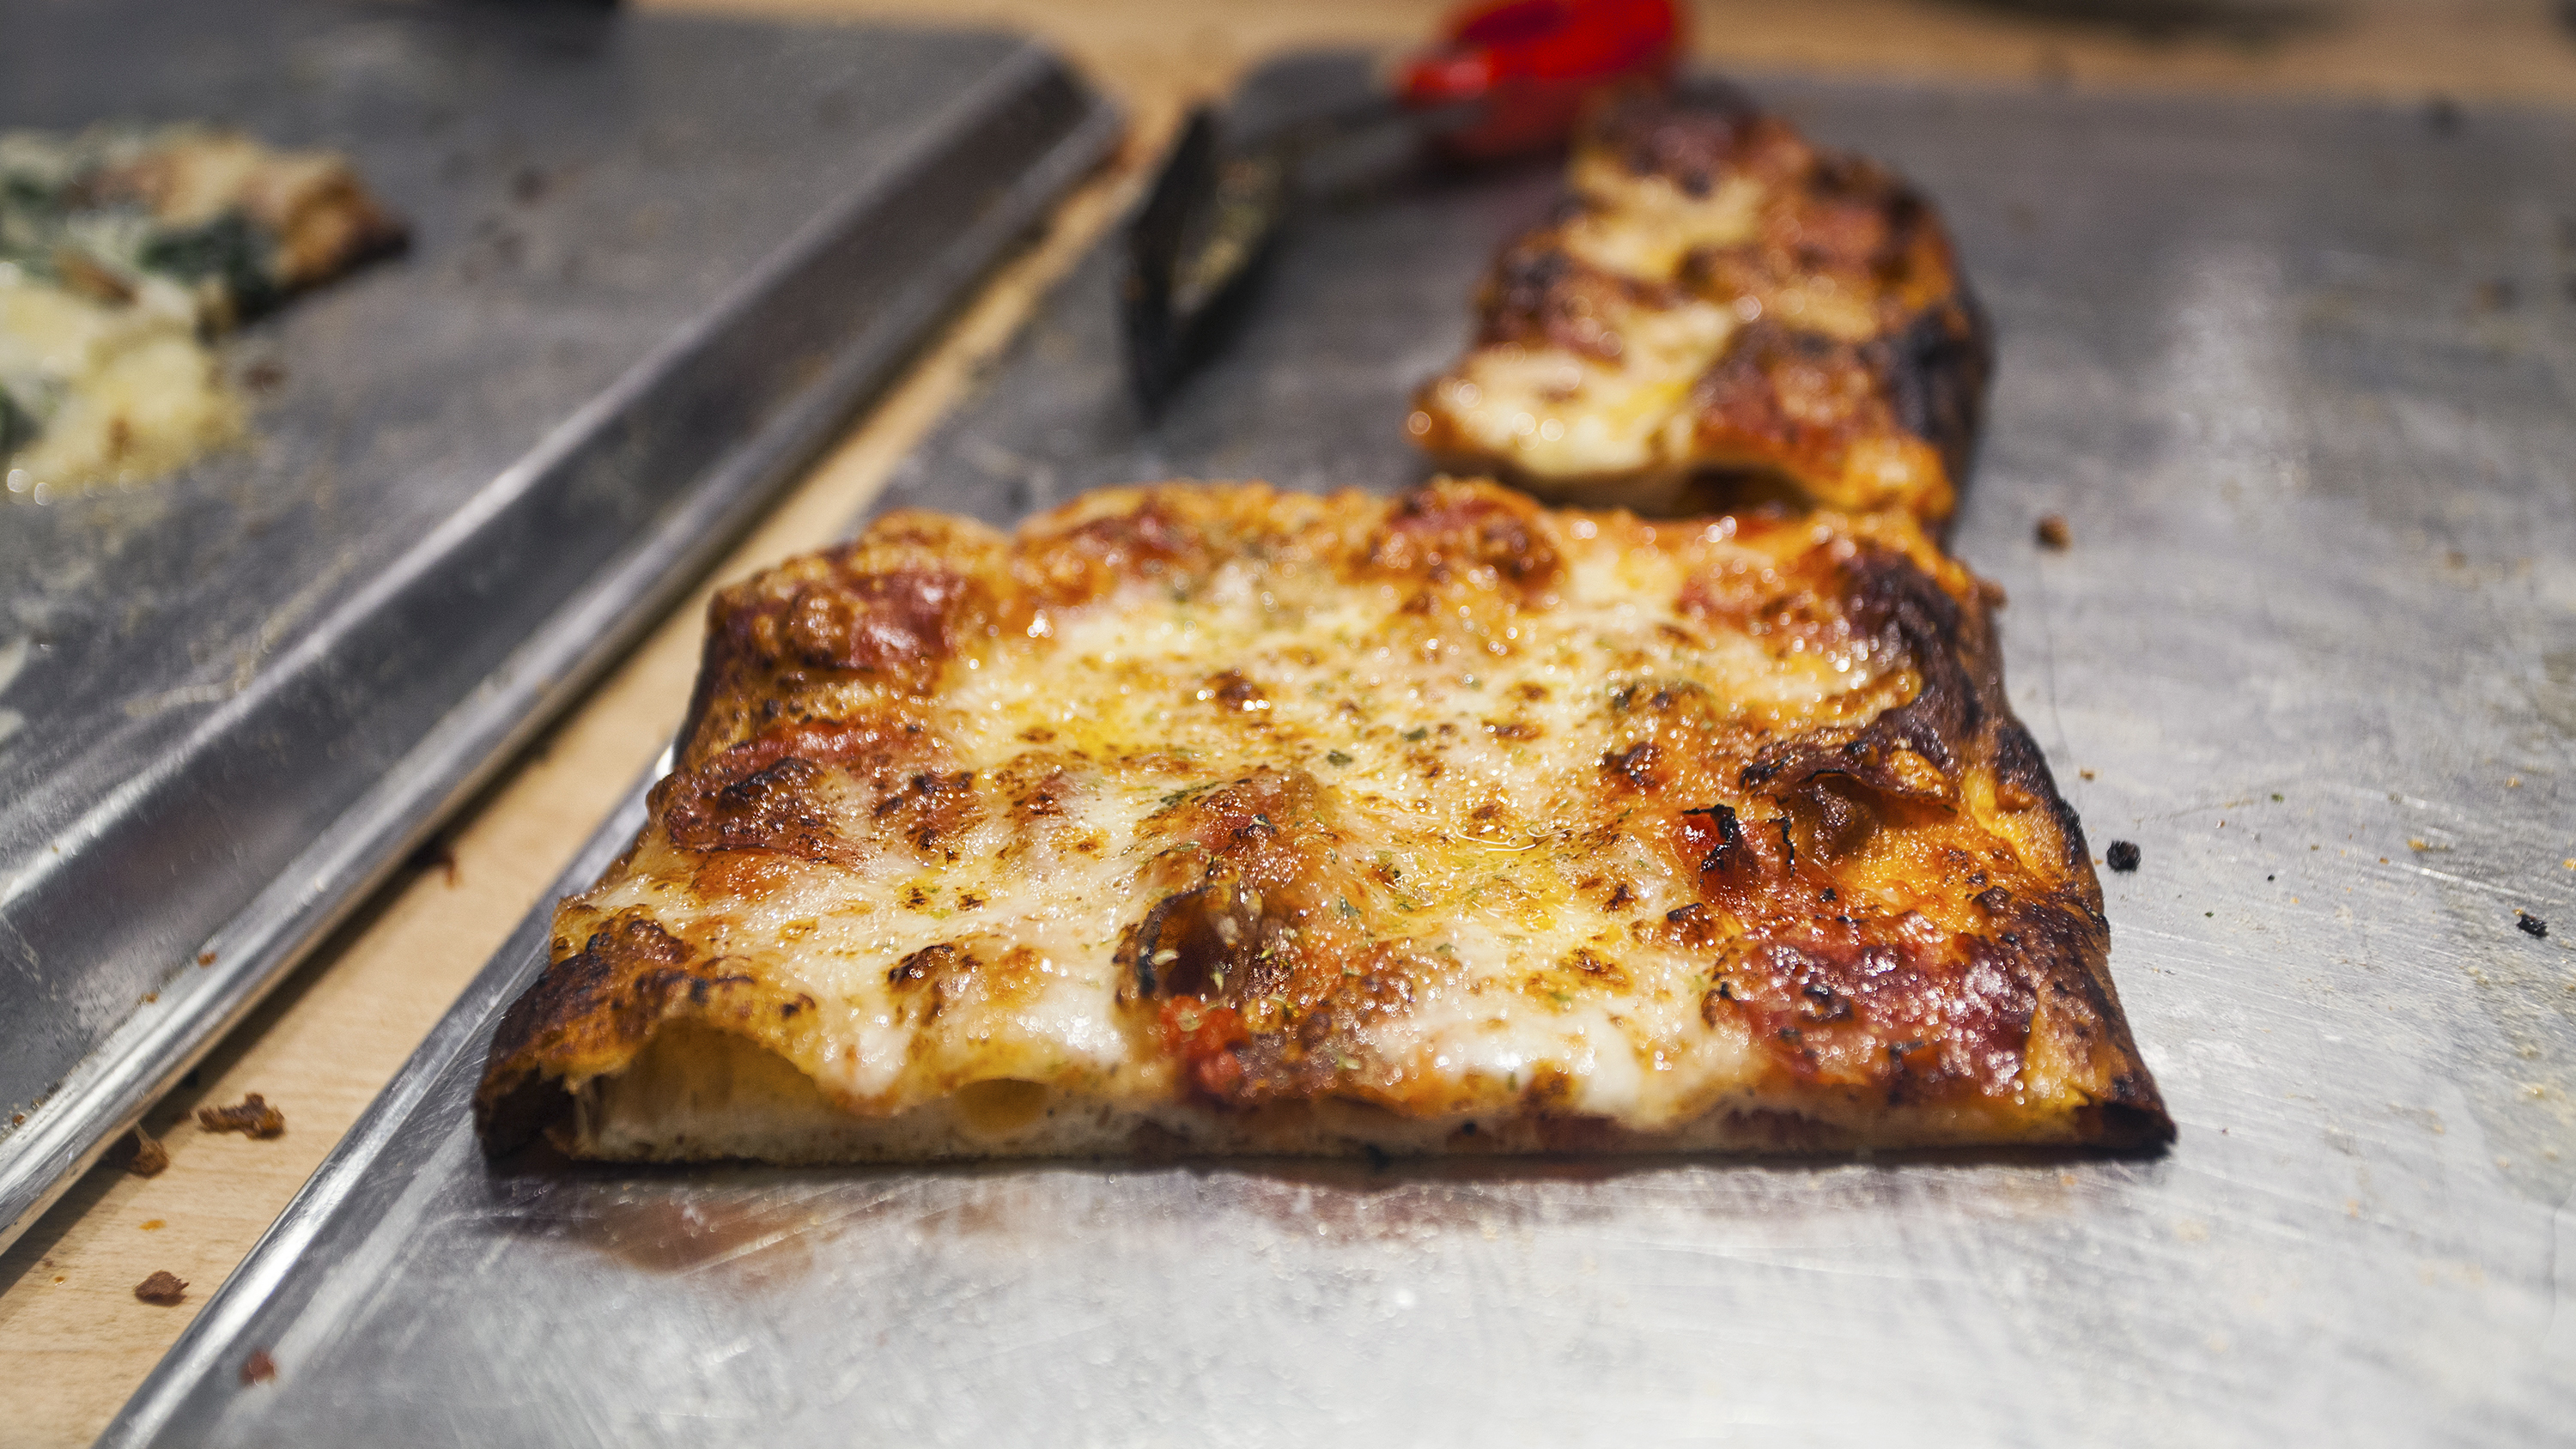 Nancy Silverton and Matt Molina's Triple Beam Pizza in Highland Park